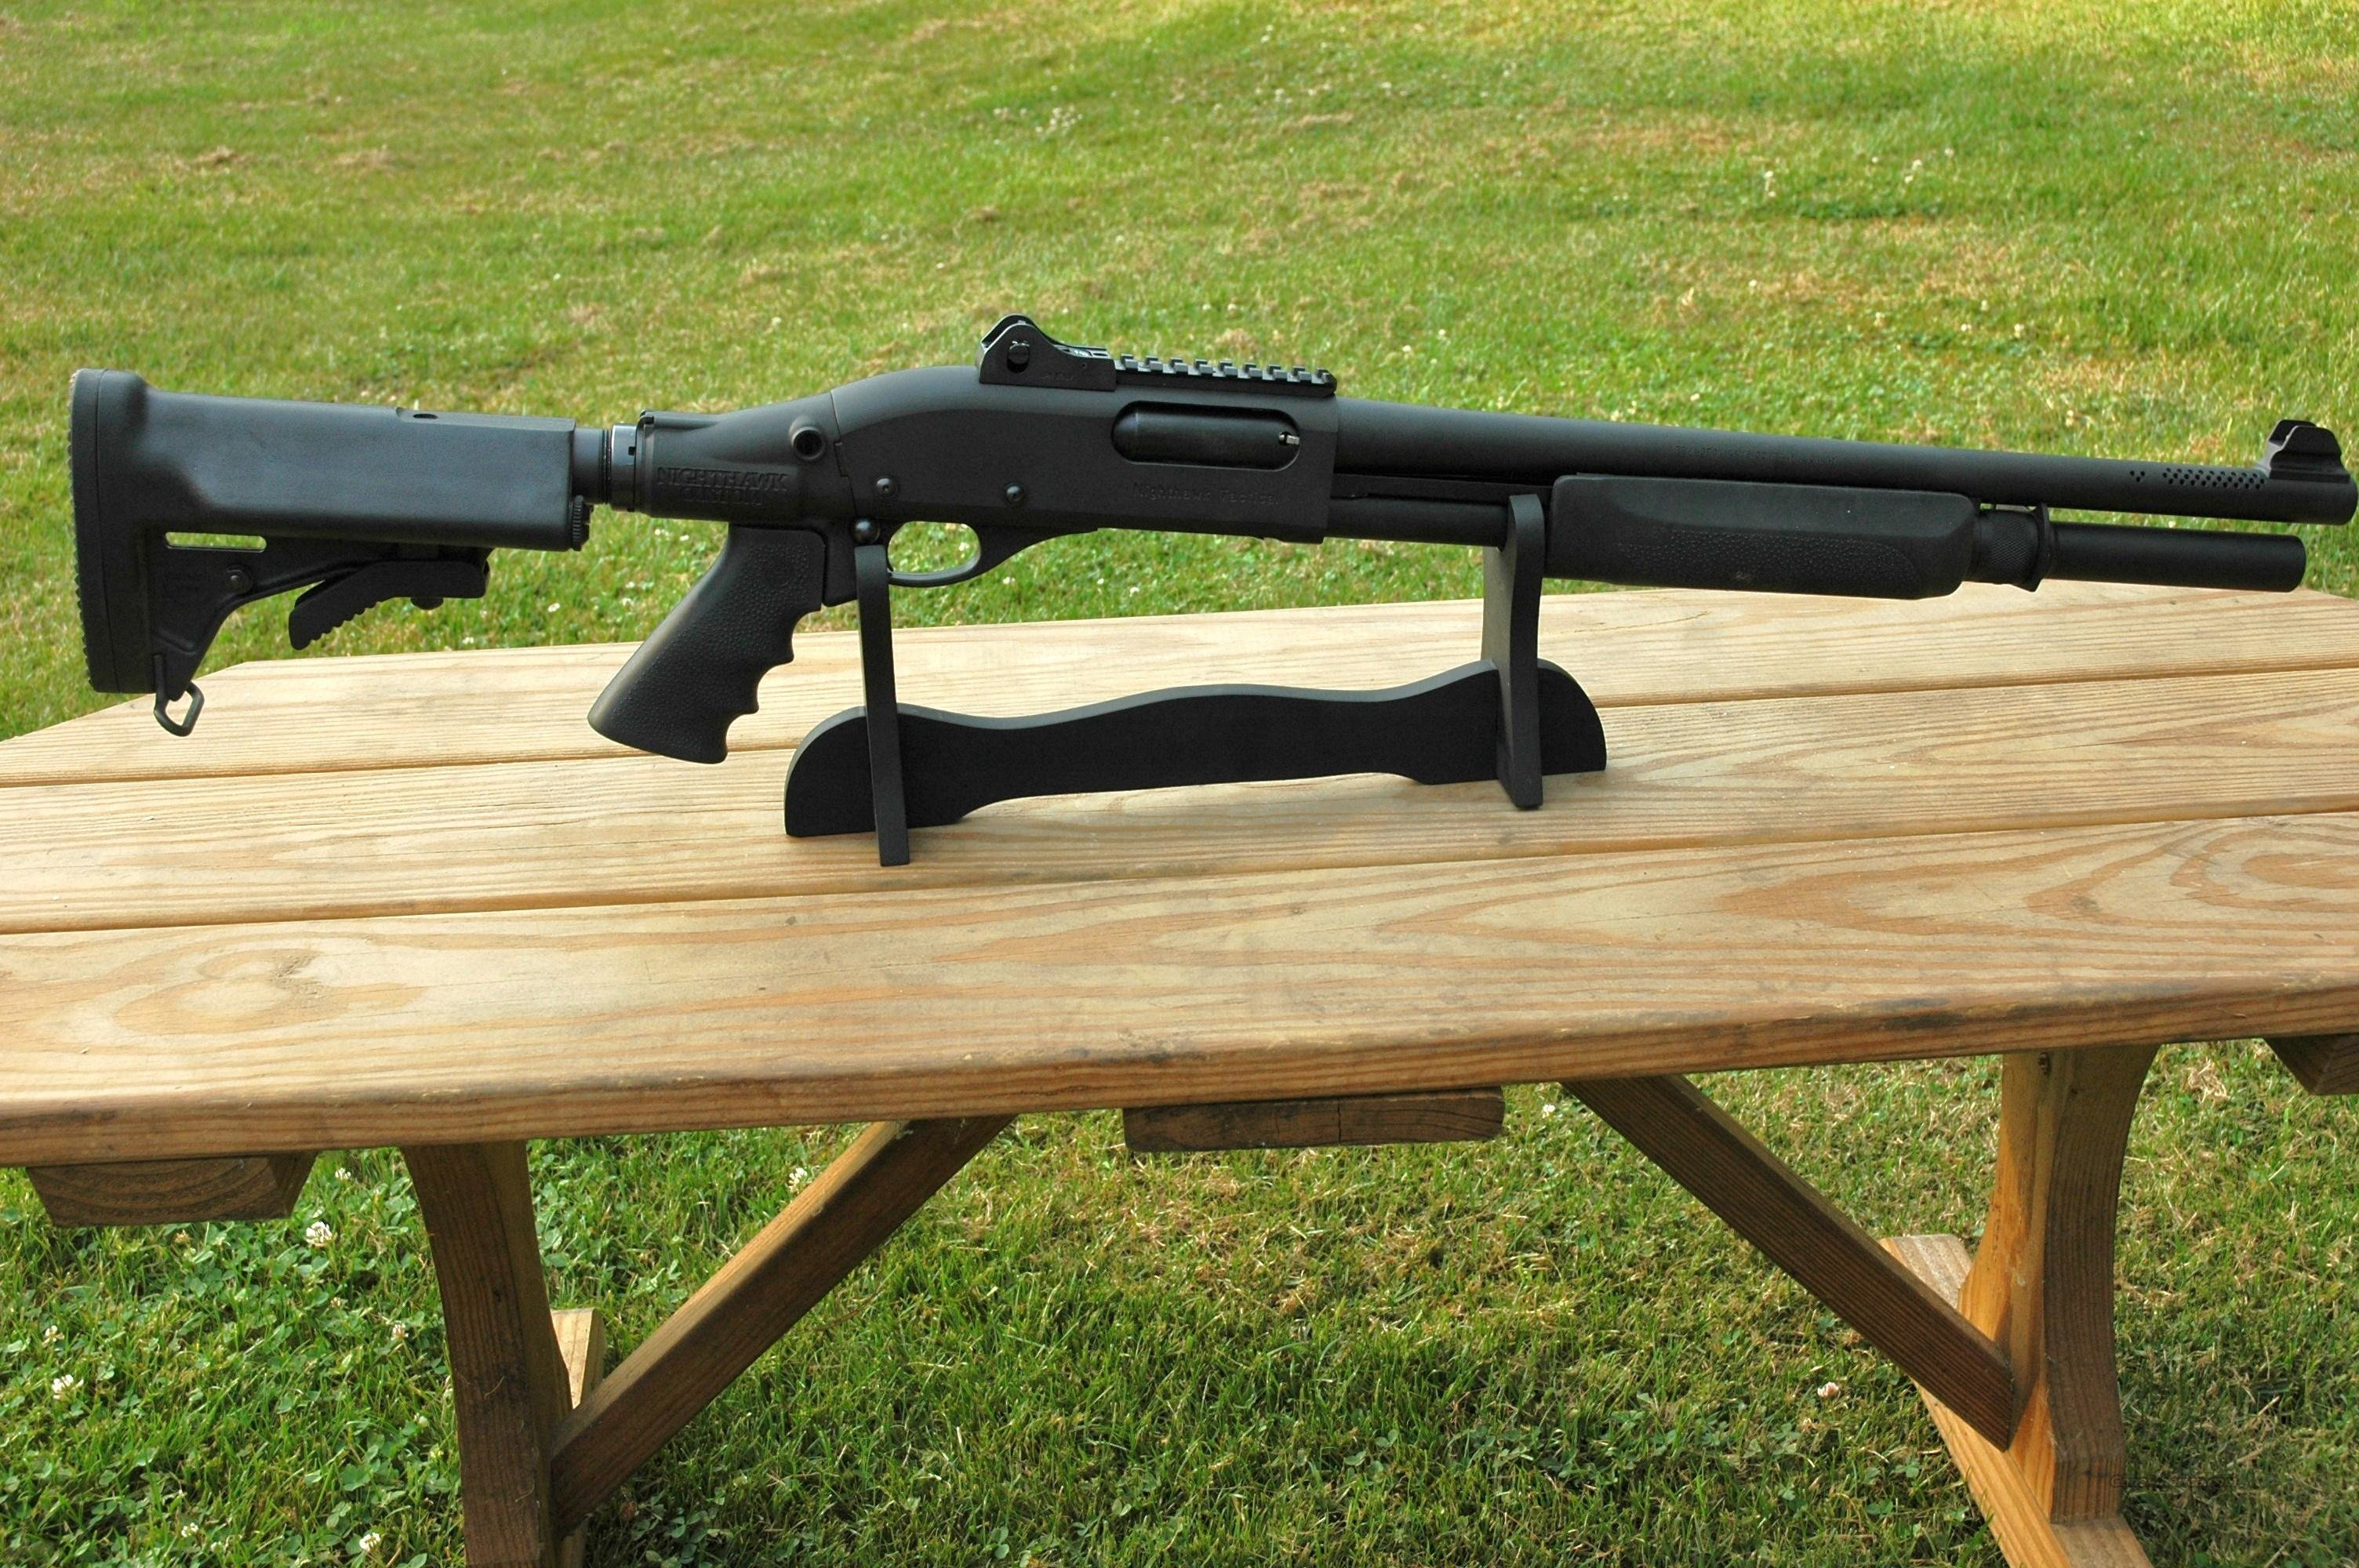 Nighthawk Custom 870 pump 12 gauge  Guns > Shotguns > Wilson Combat Shotguns